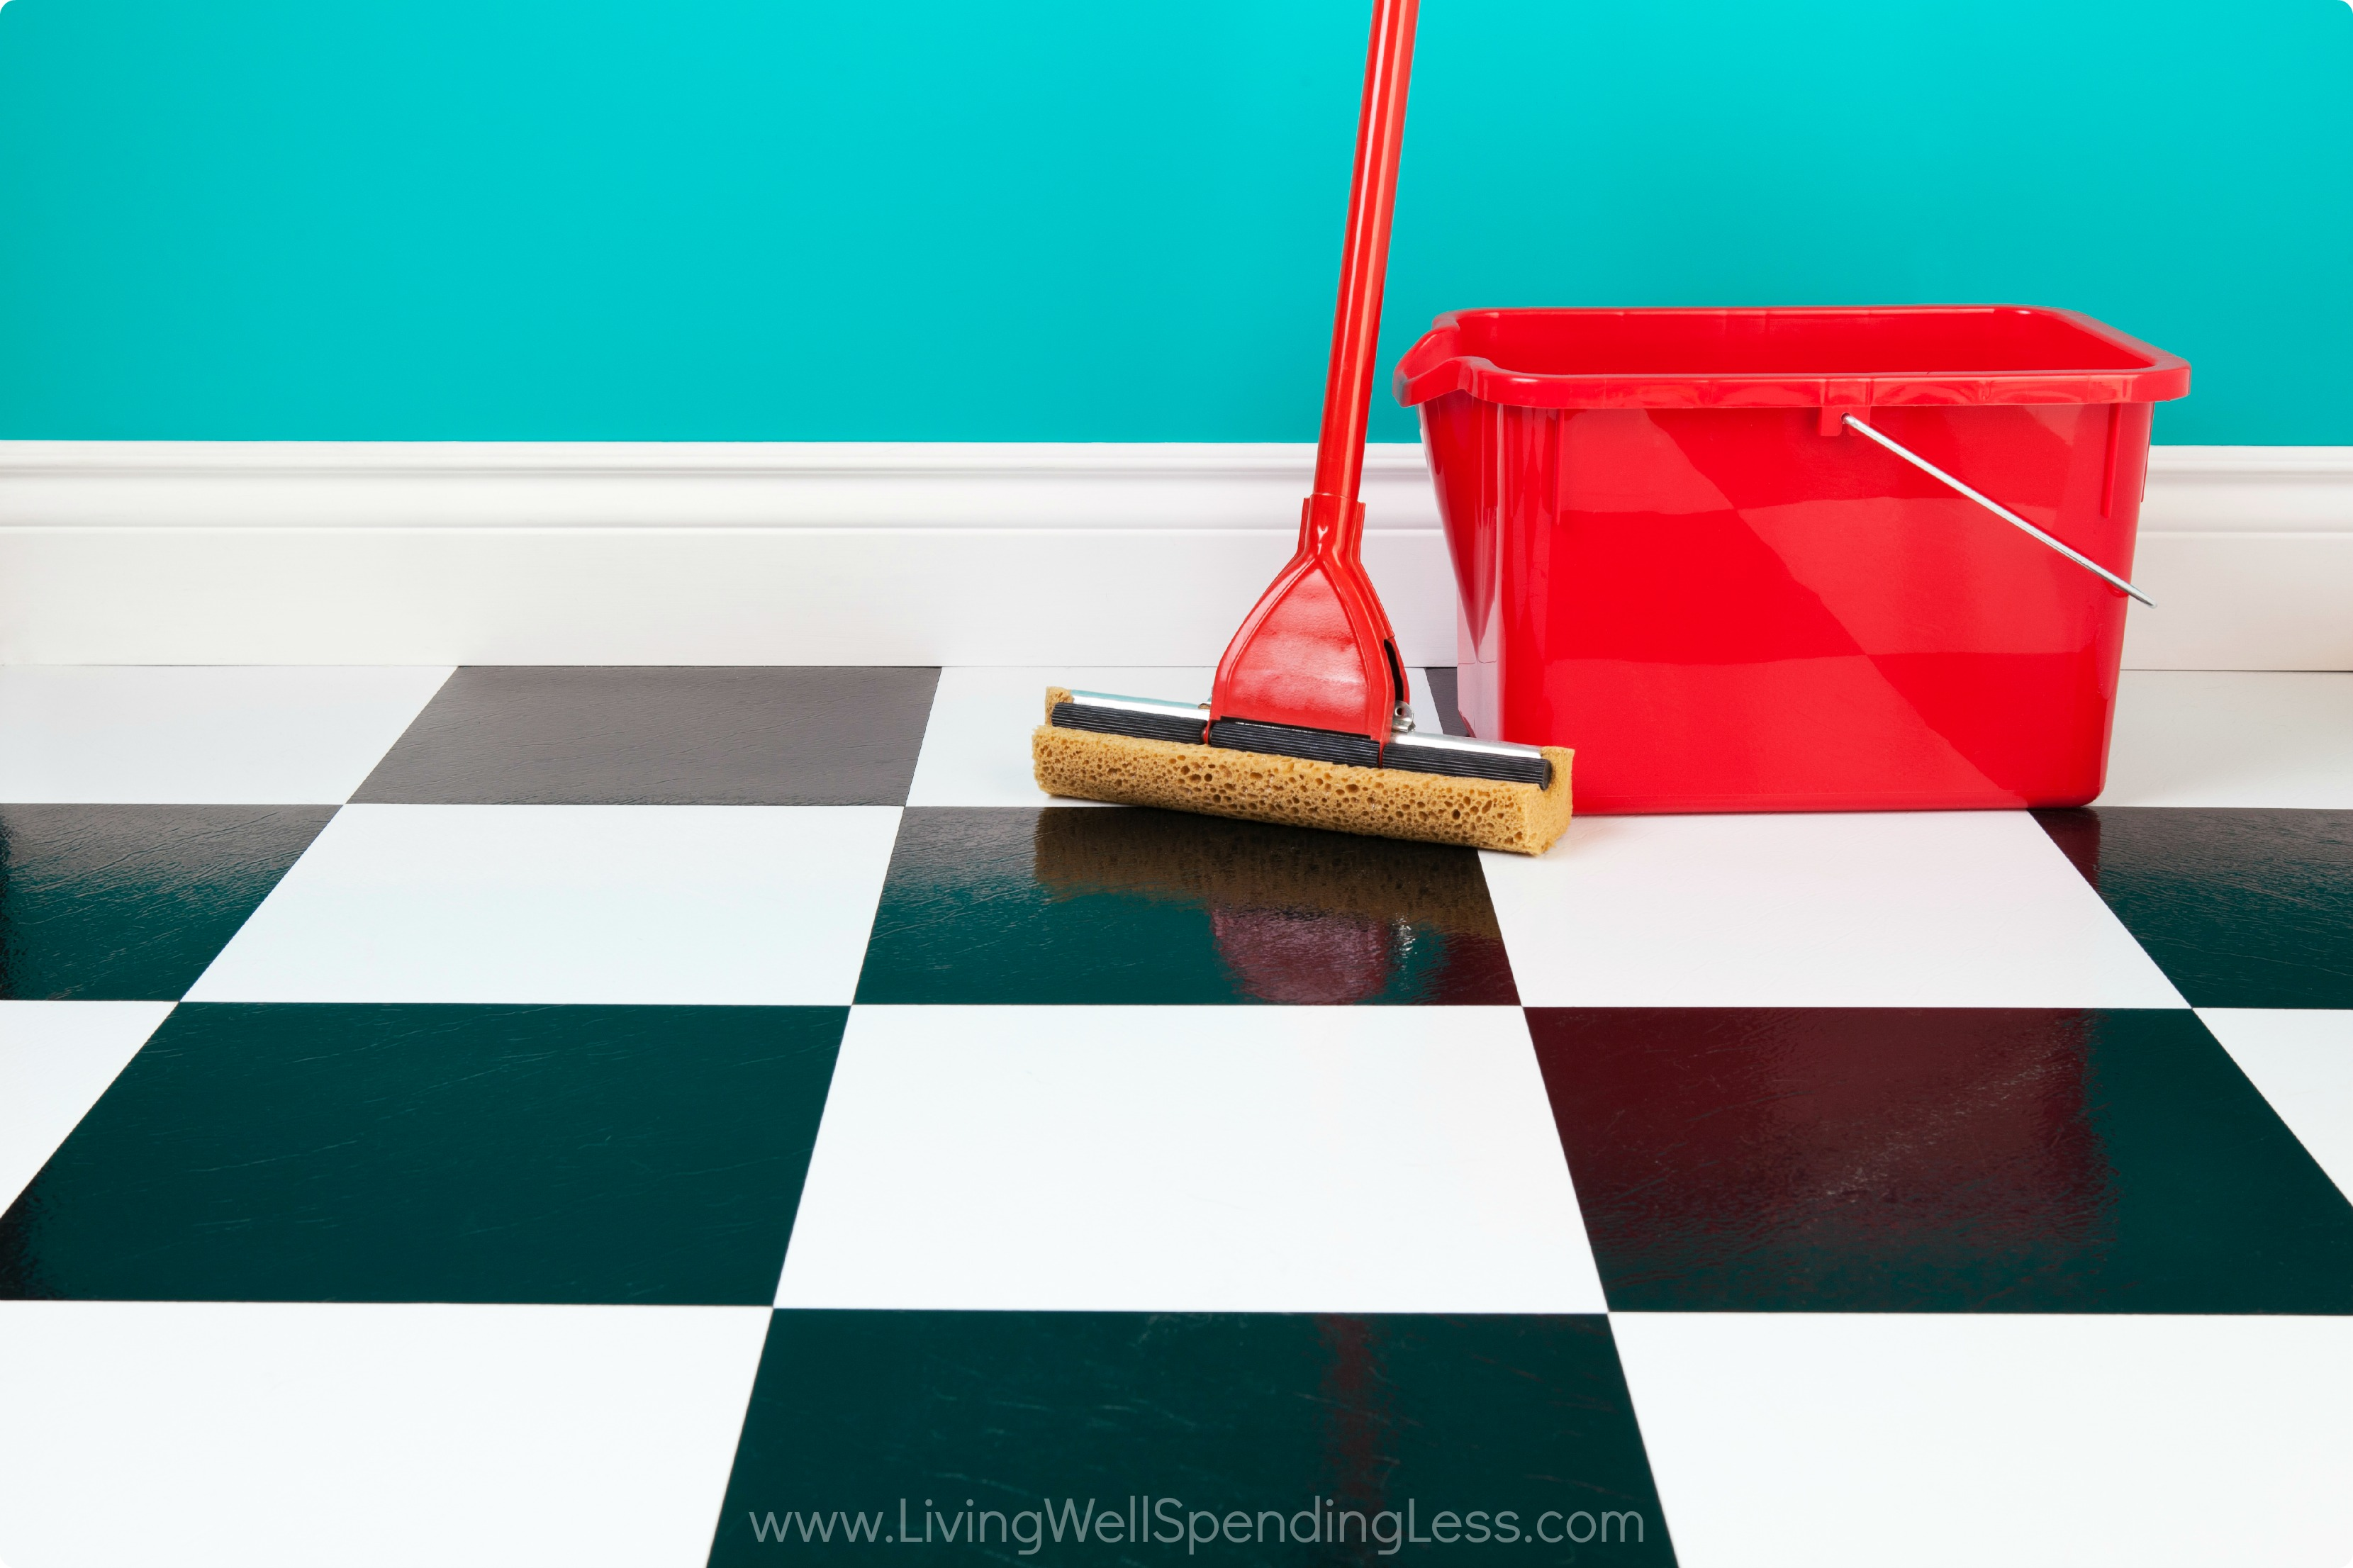 Cleaning Floor - Living Well Spending Less®